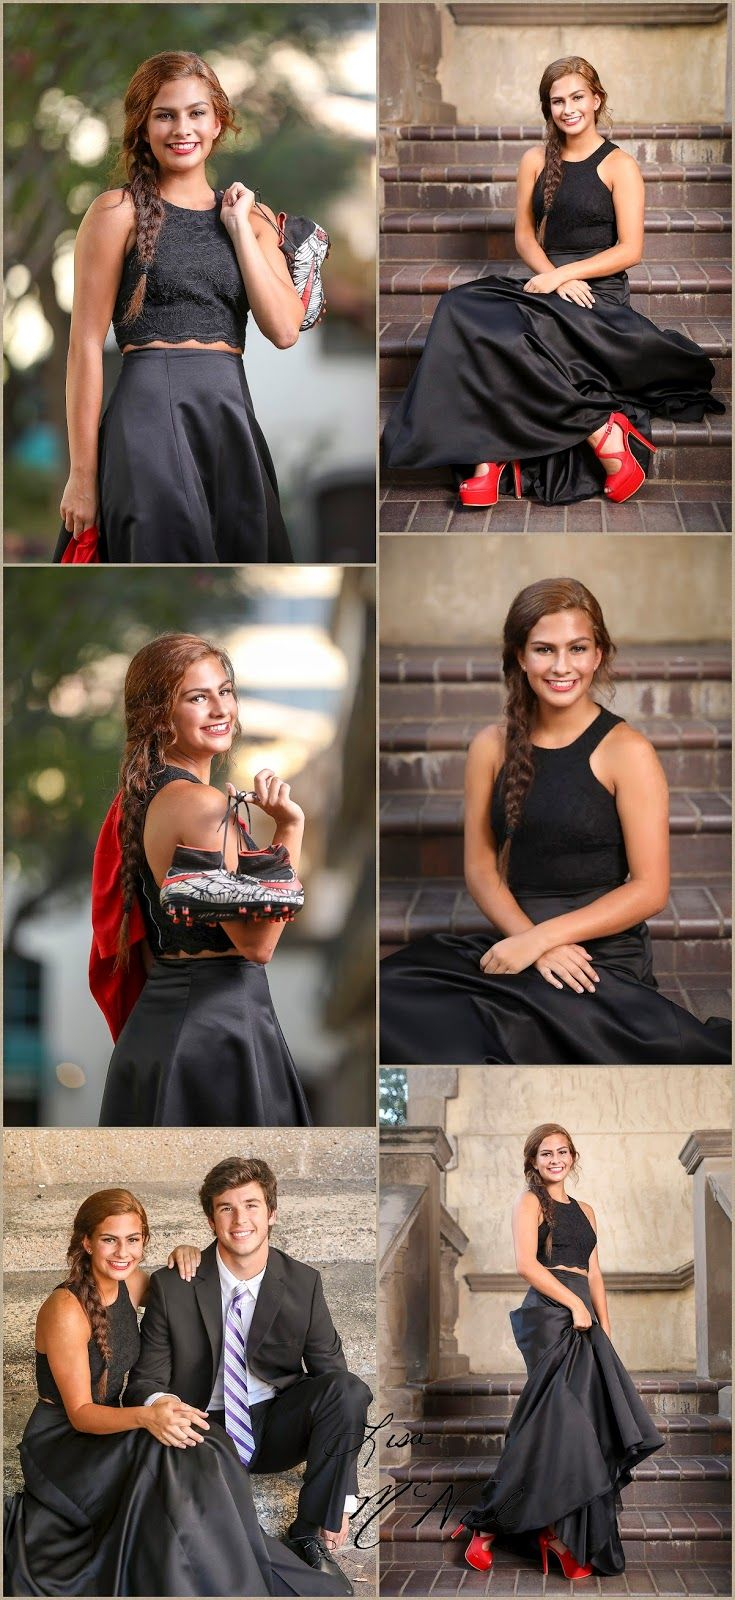 How to take Prom Pictures. Prom Senior Group and Individual Ideas by Dallas Photographer Lisa McNiel #promphotographyposes